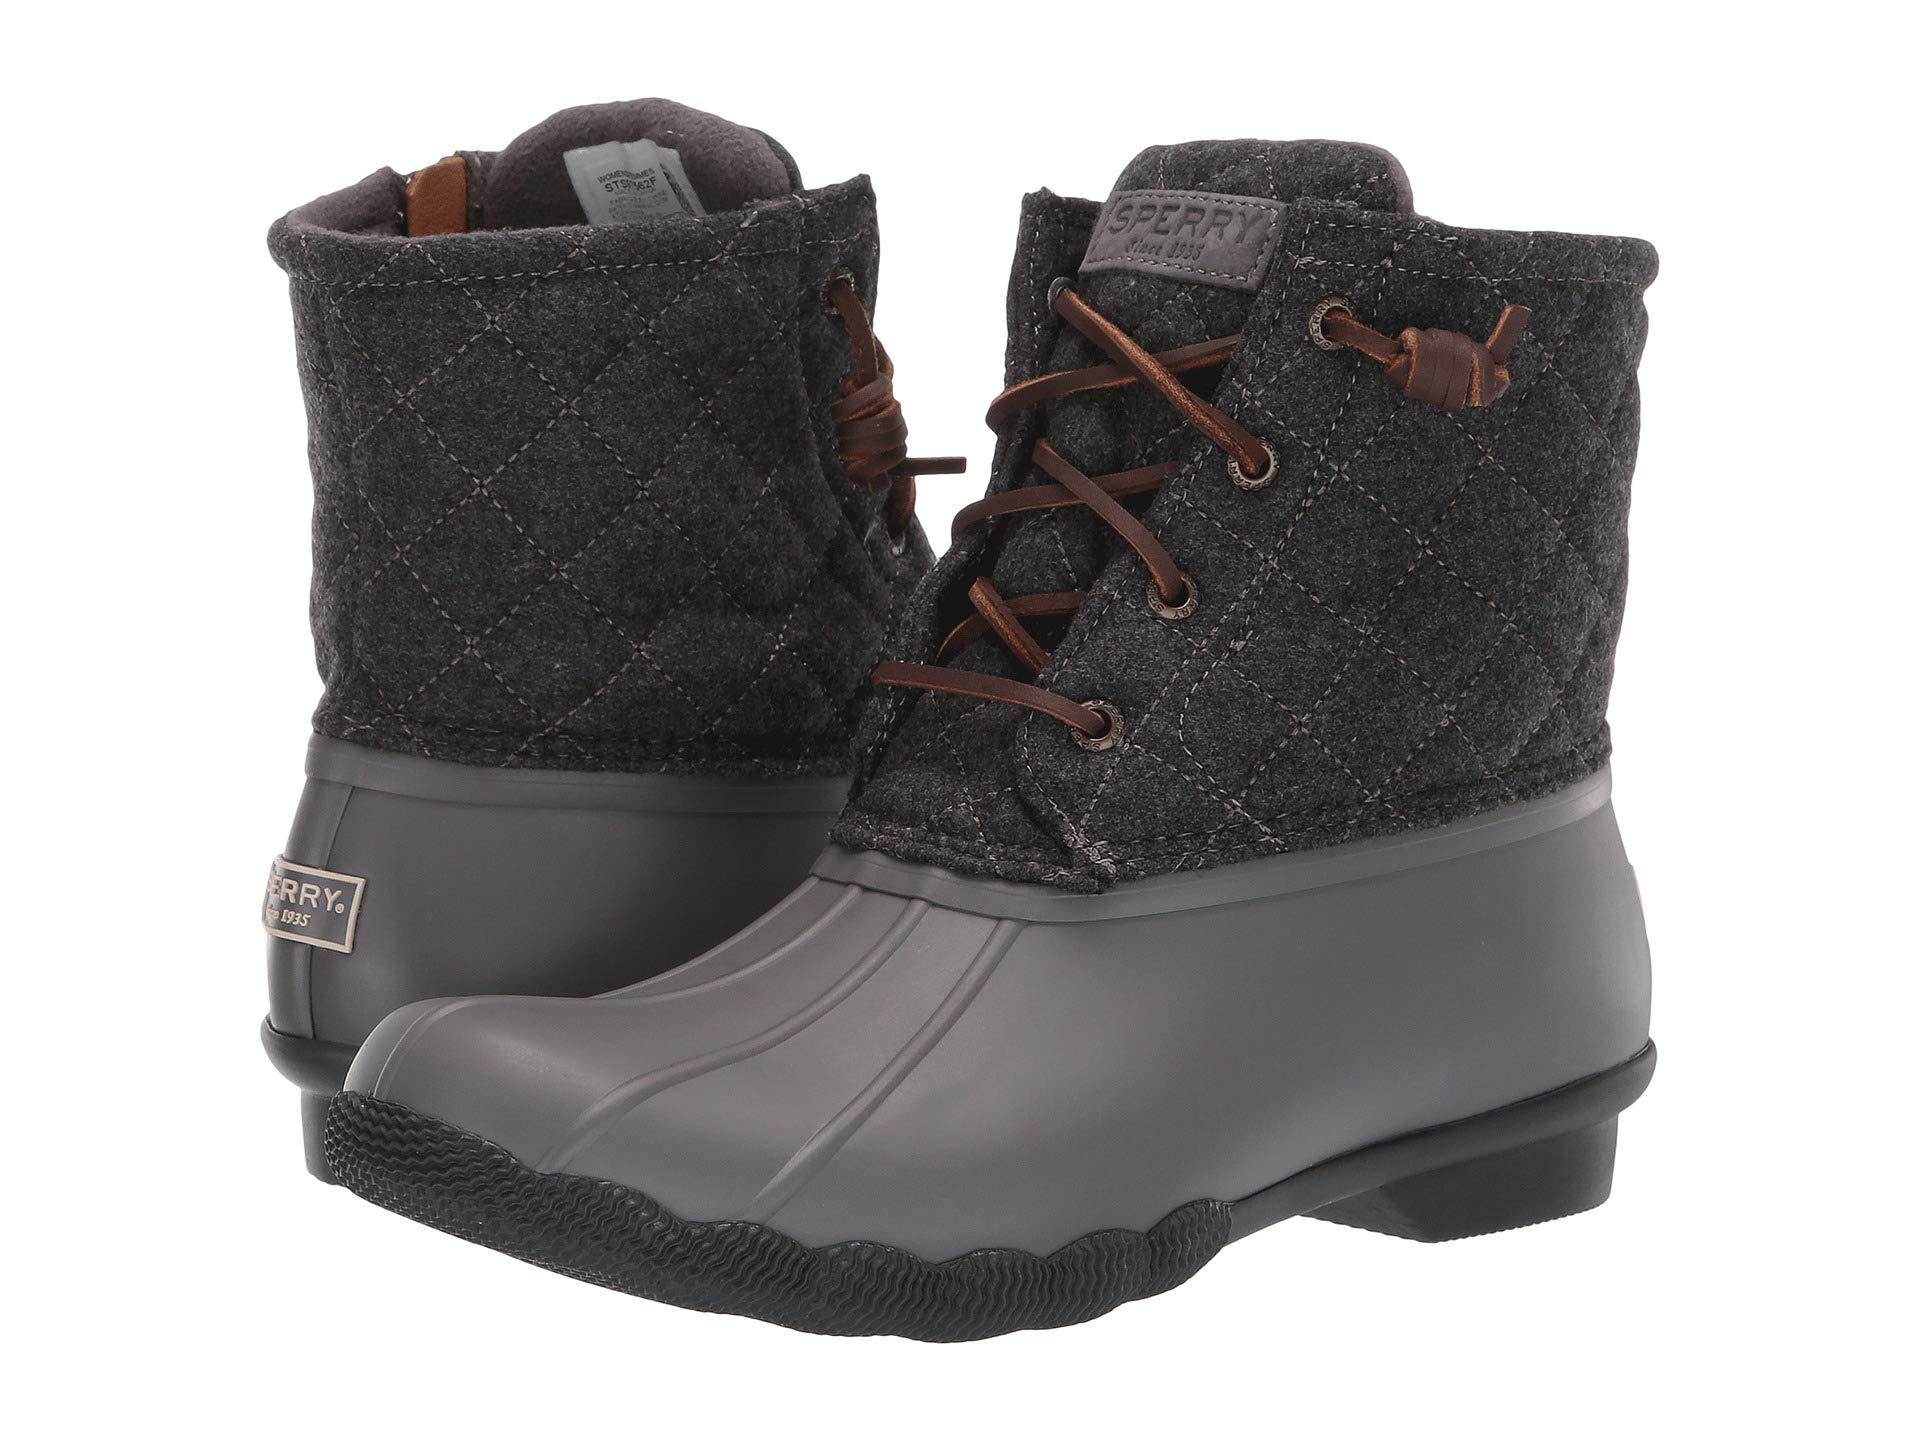 Sperry Top-Sider Saltwater Quilted Wool